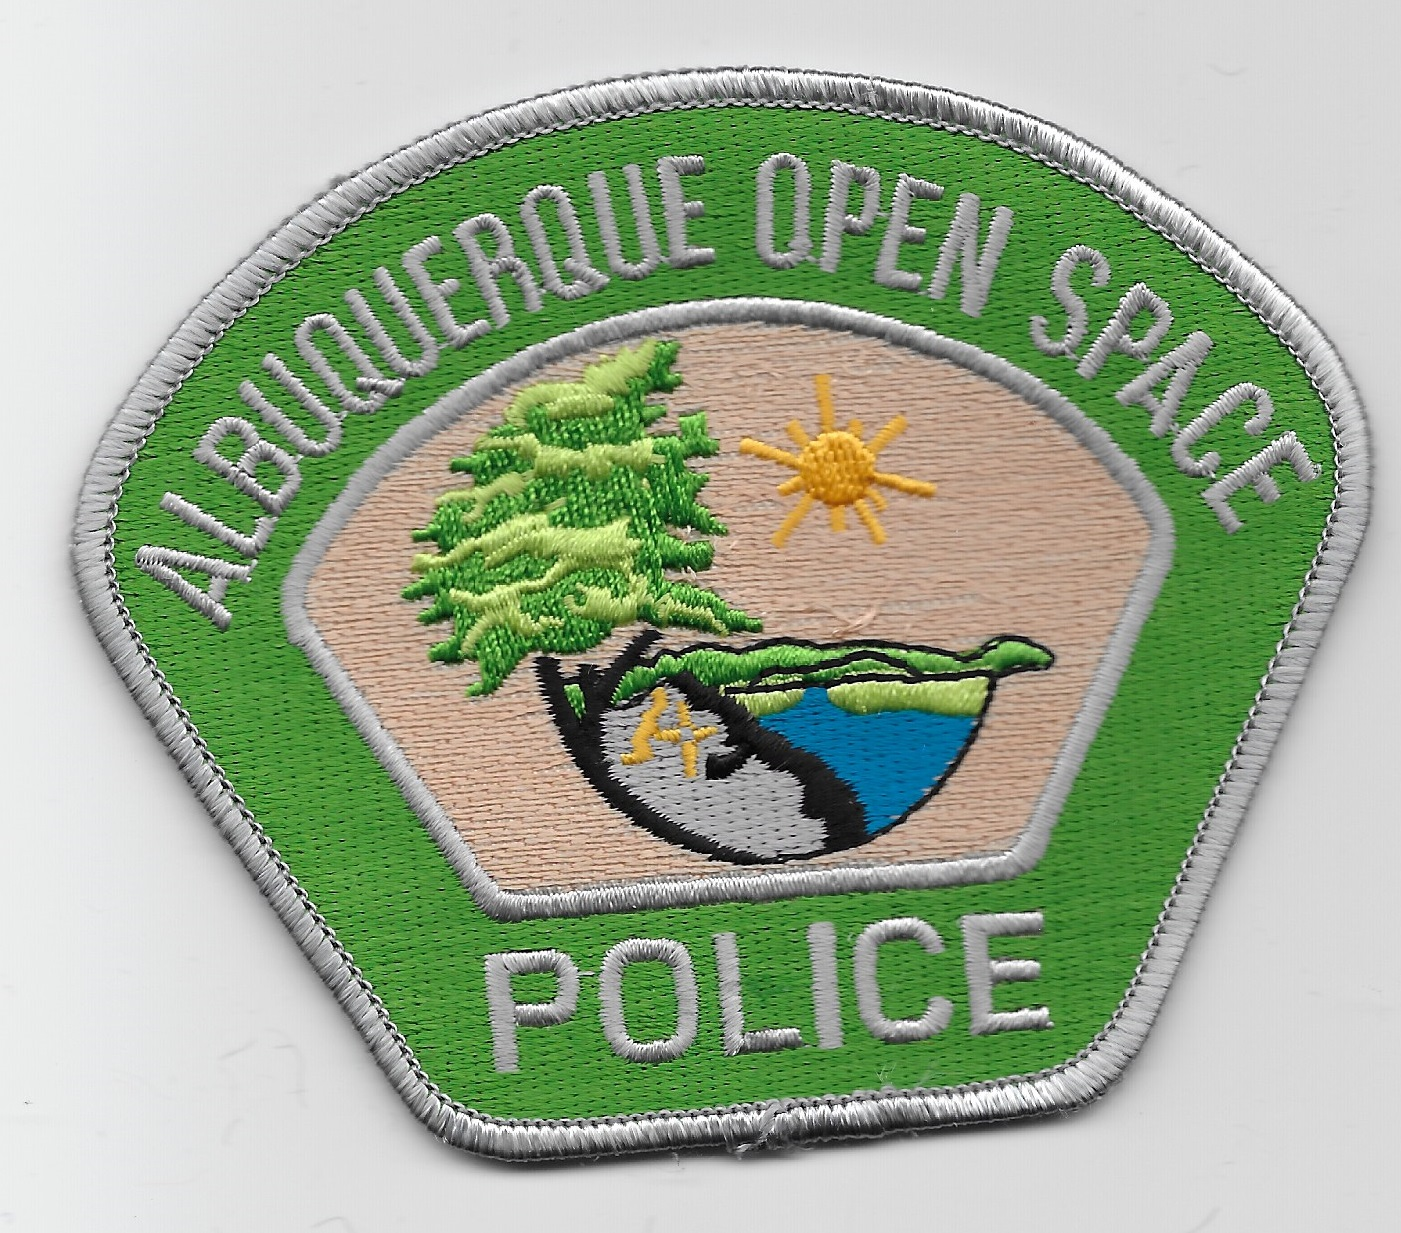 Albuquerque Police Open Space Green NM